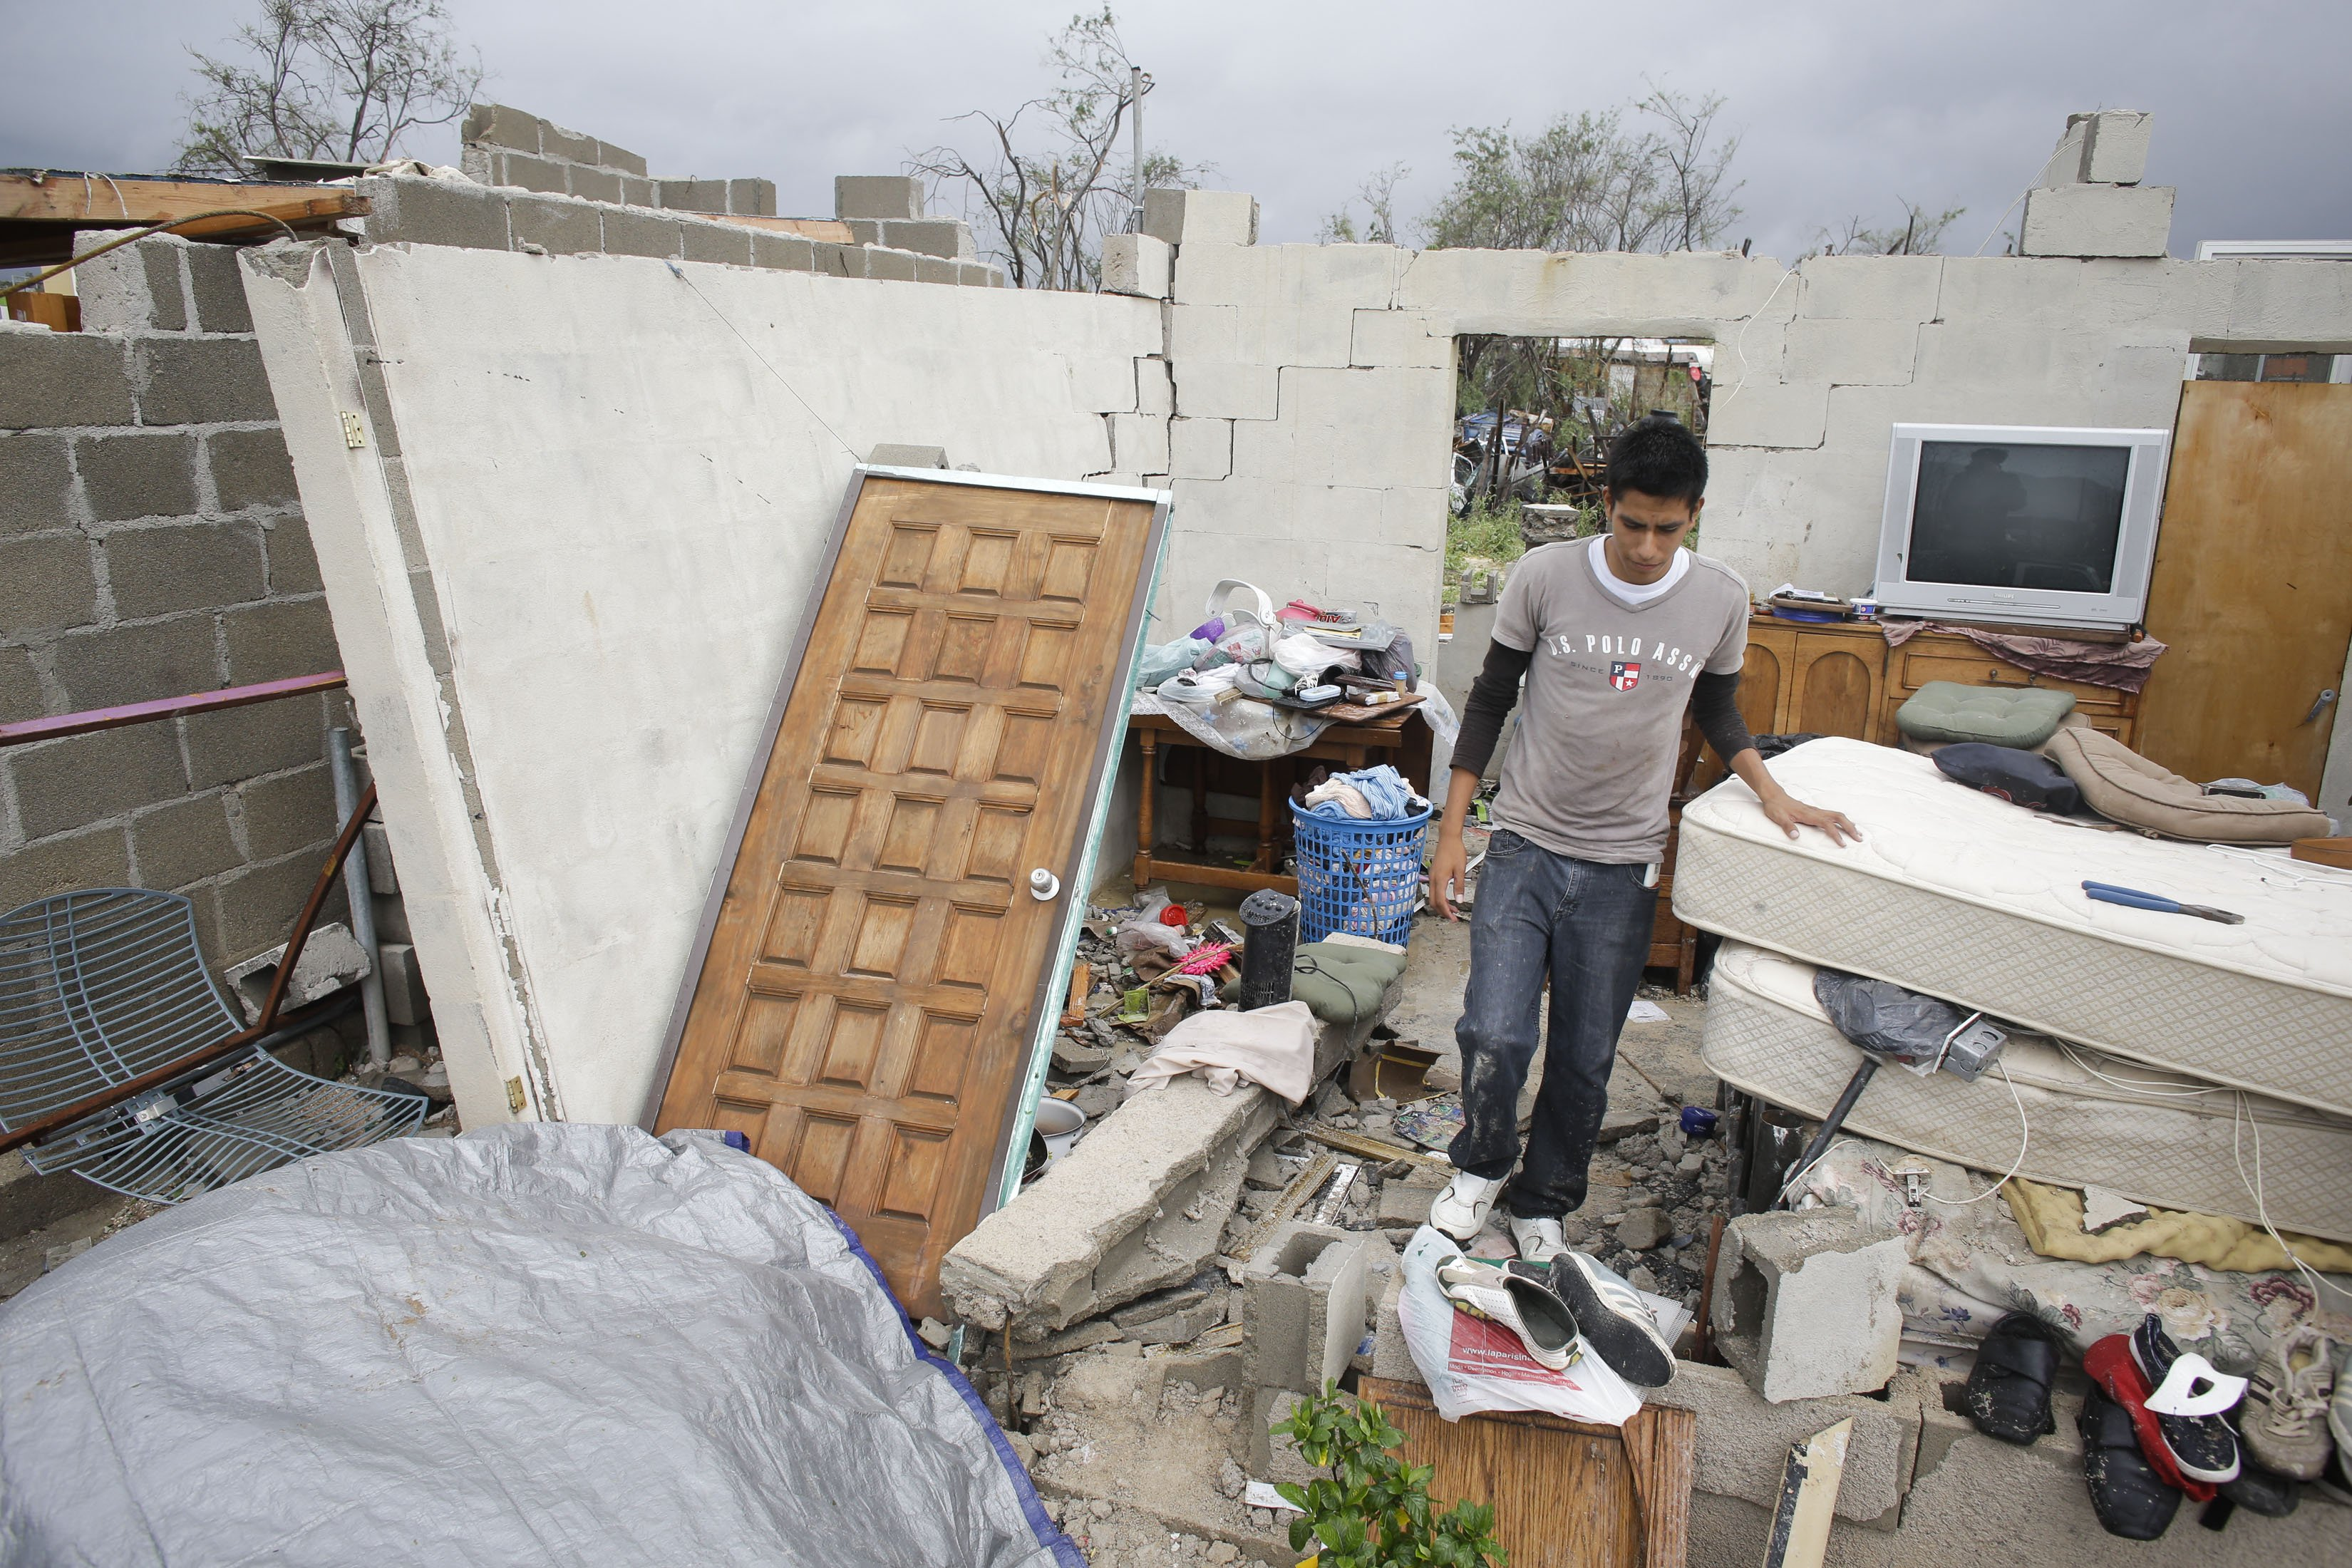 Raimundo Diaz, 17, walks inside what used to be a bedroom after his family's house was destroyed by Hurricane Odile in Los Cabos, Mexico, Sept. 15, 2014.